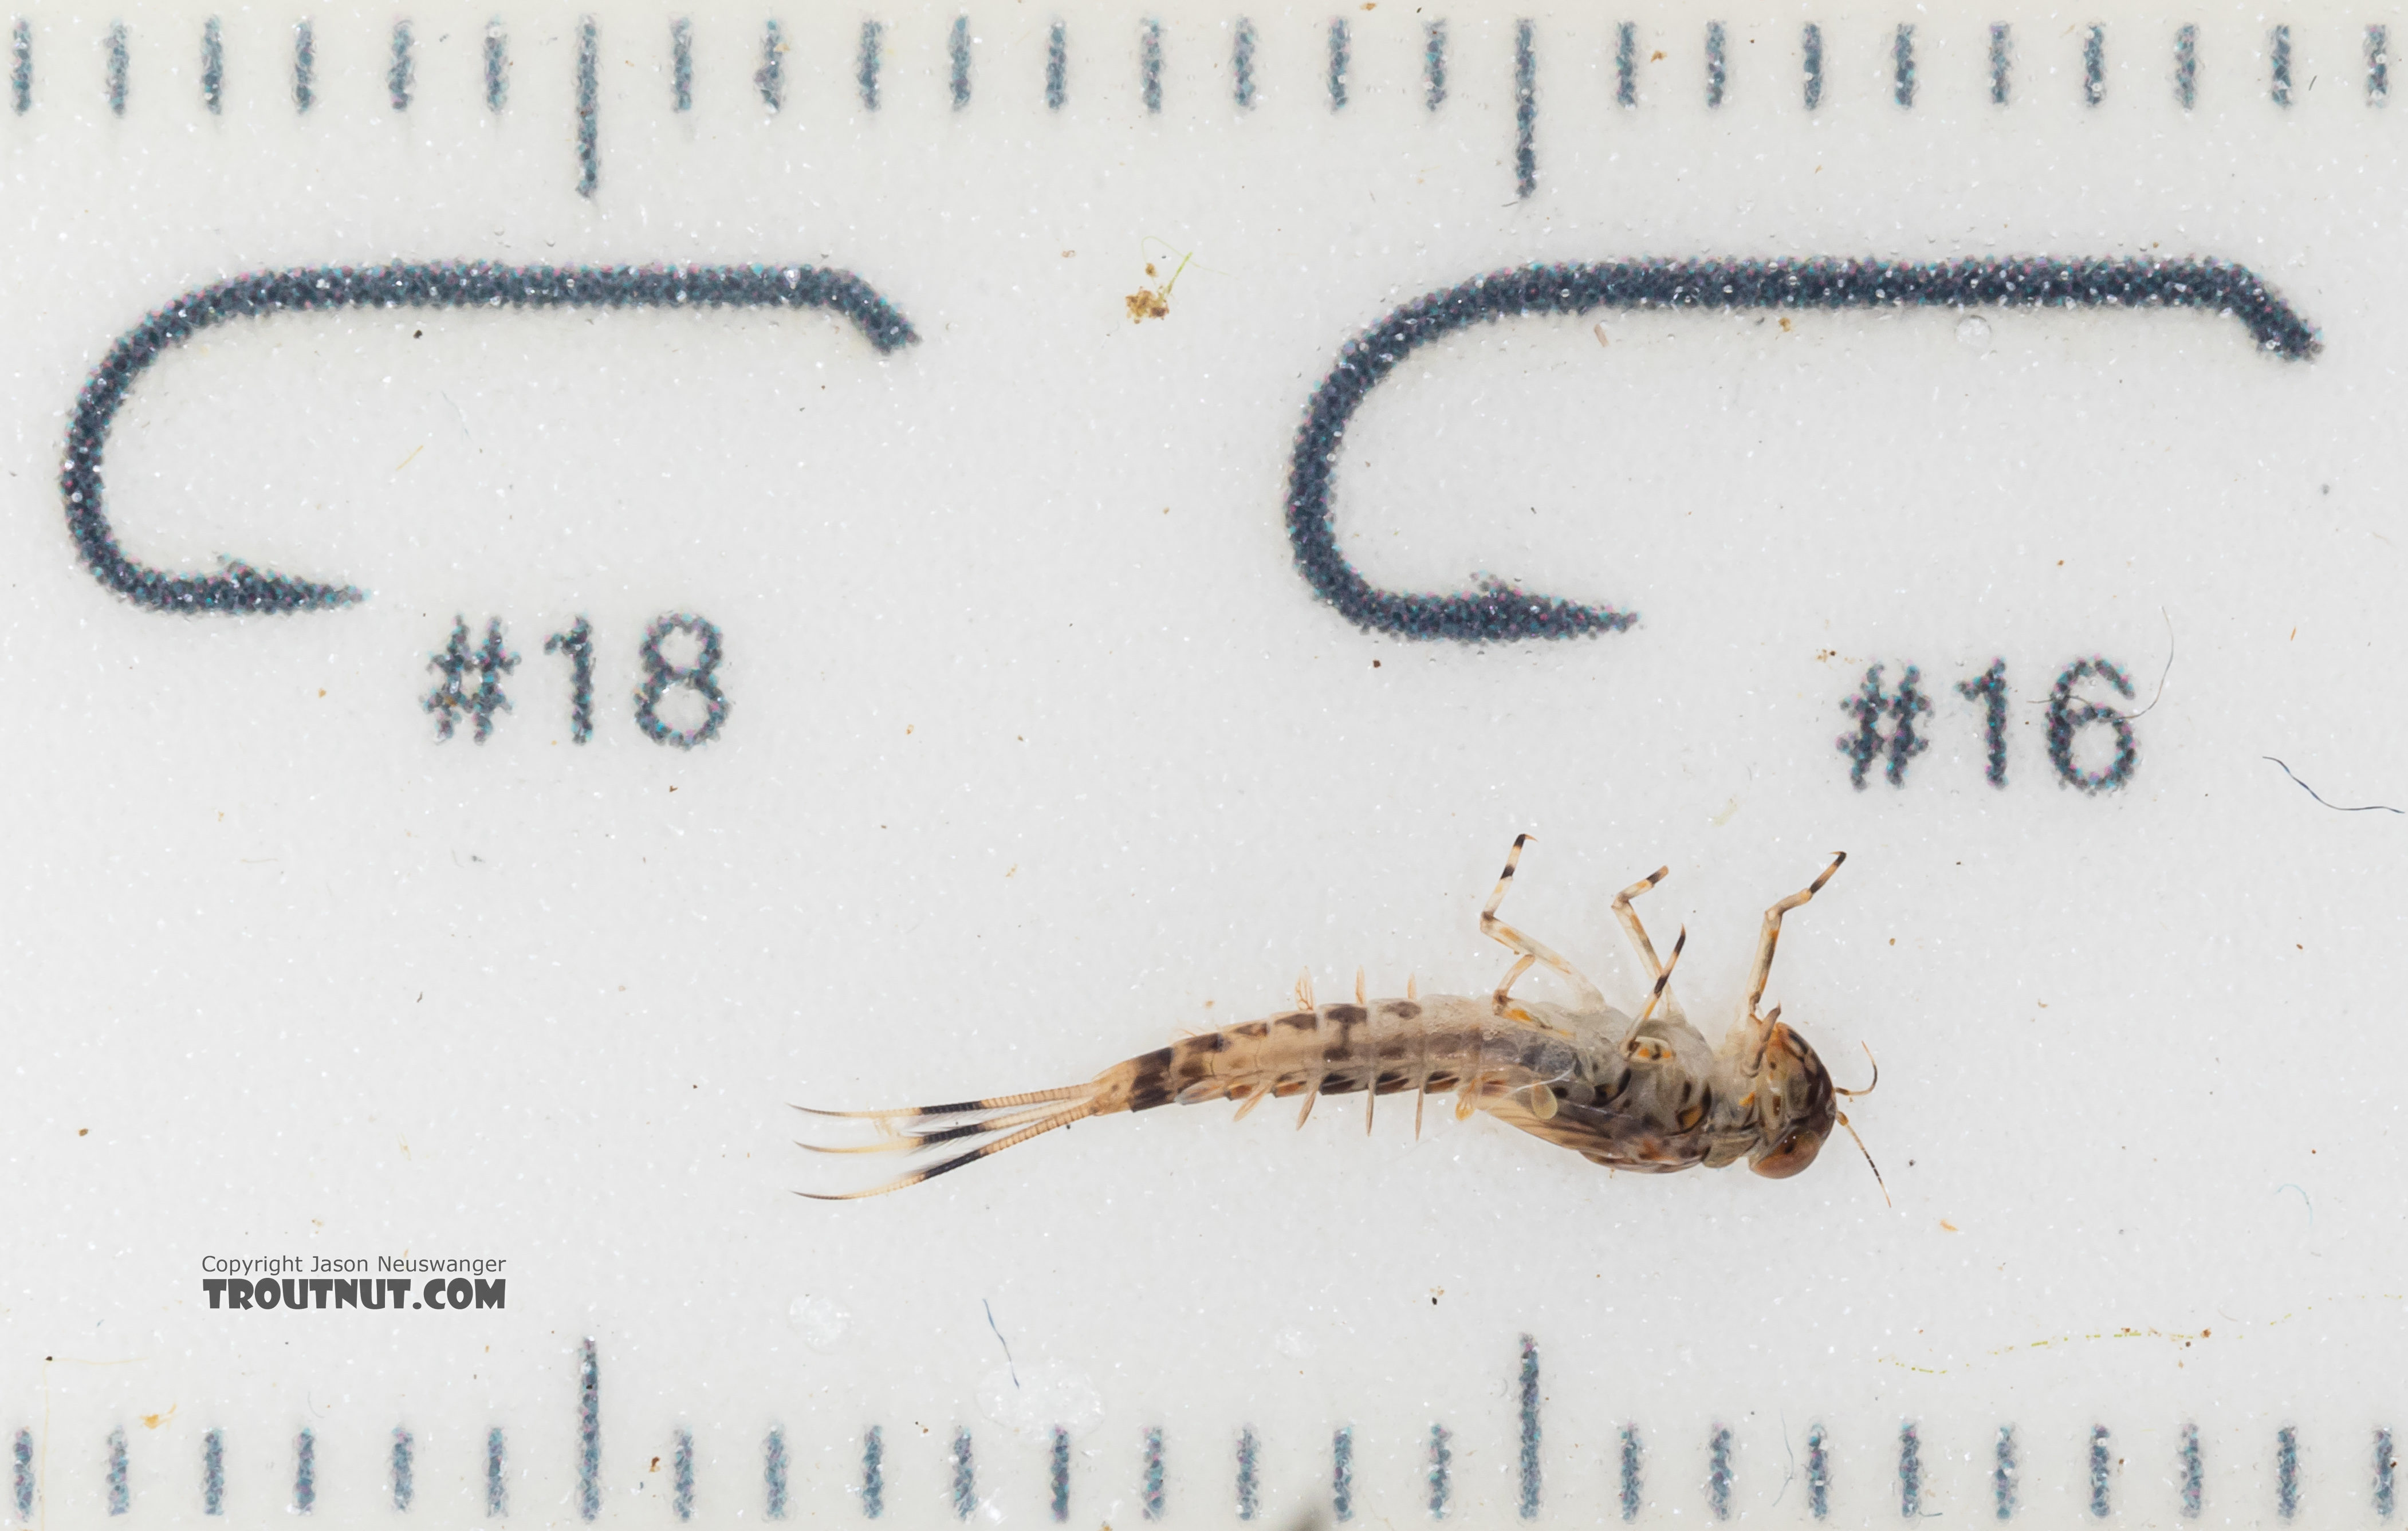 Ameletus (Brown Duns) Mayfly Nymph from Mystery Creek #199 in Washington